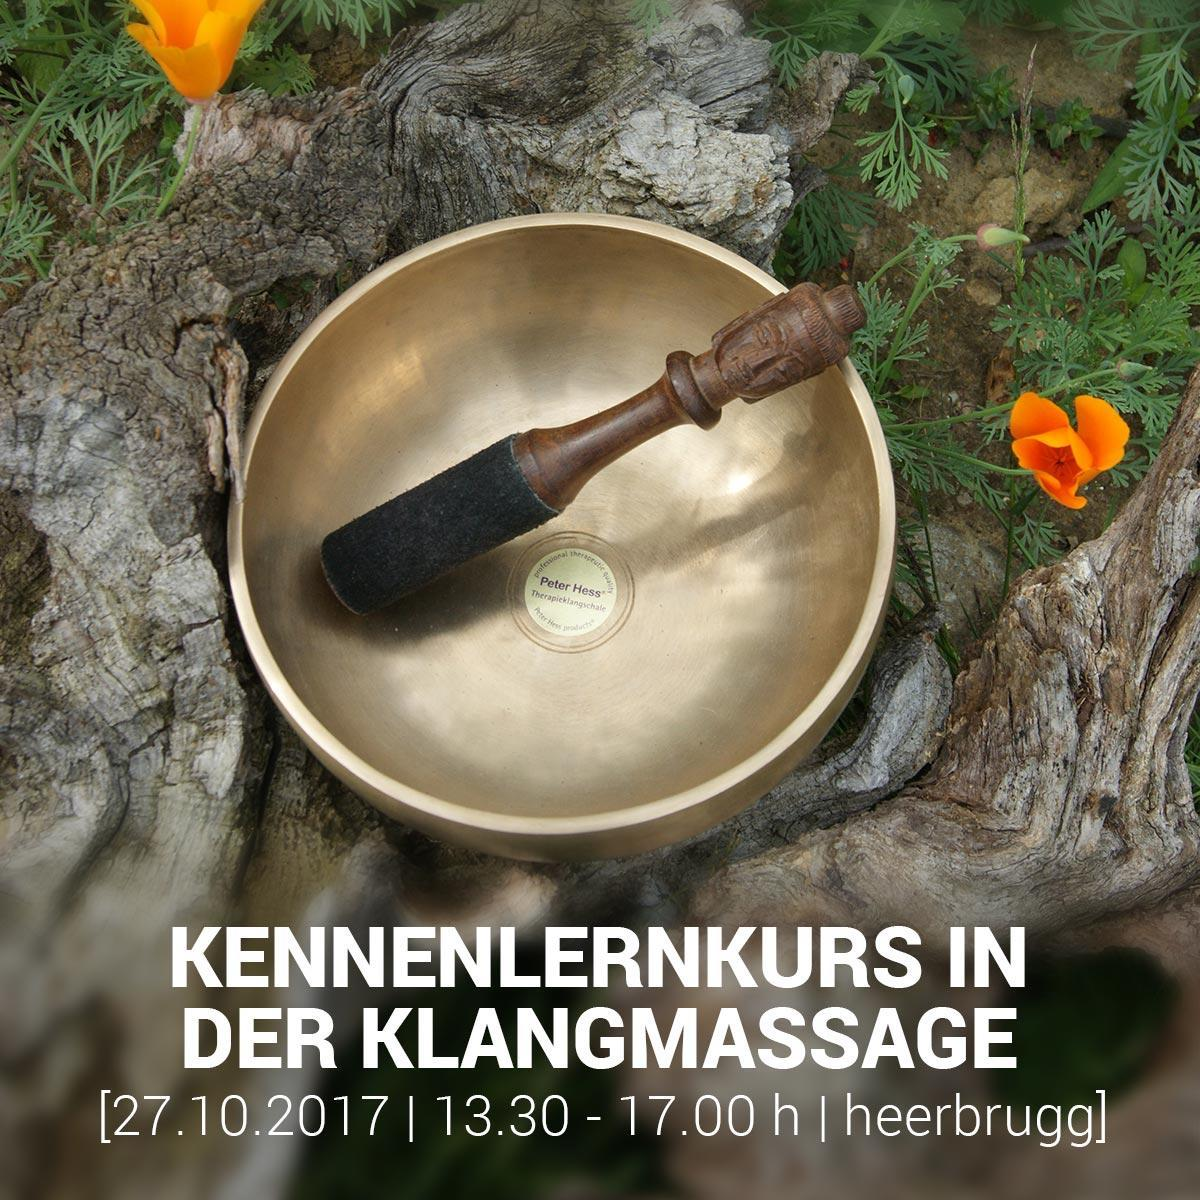 KENNENLERNKURS IN DER KLANGMASSAGE